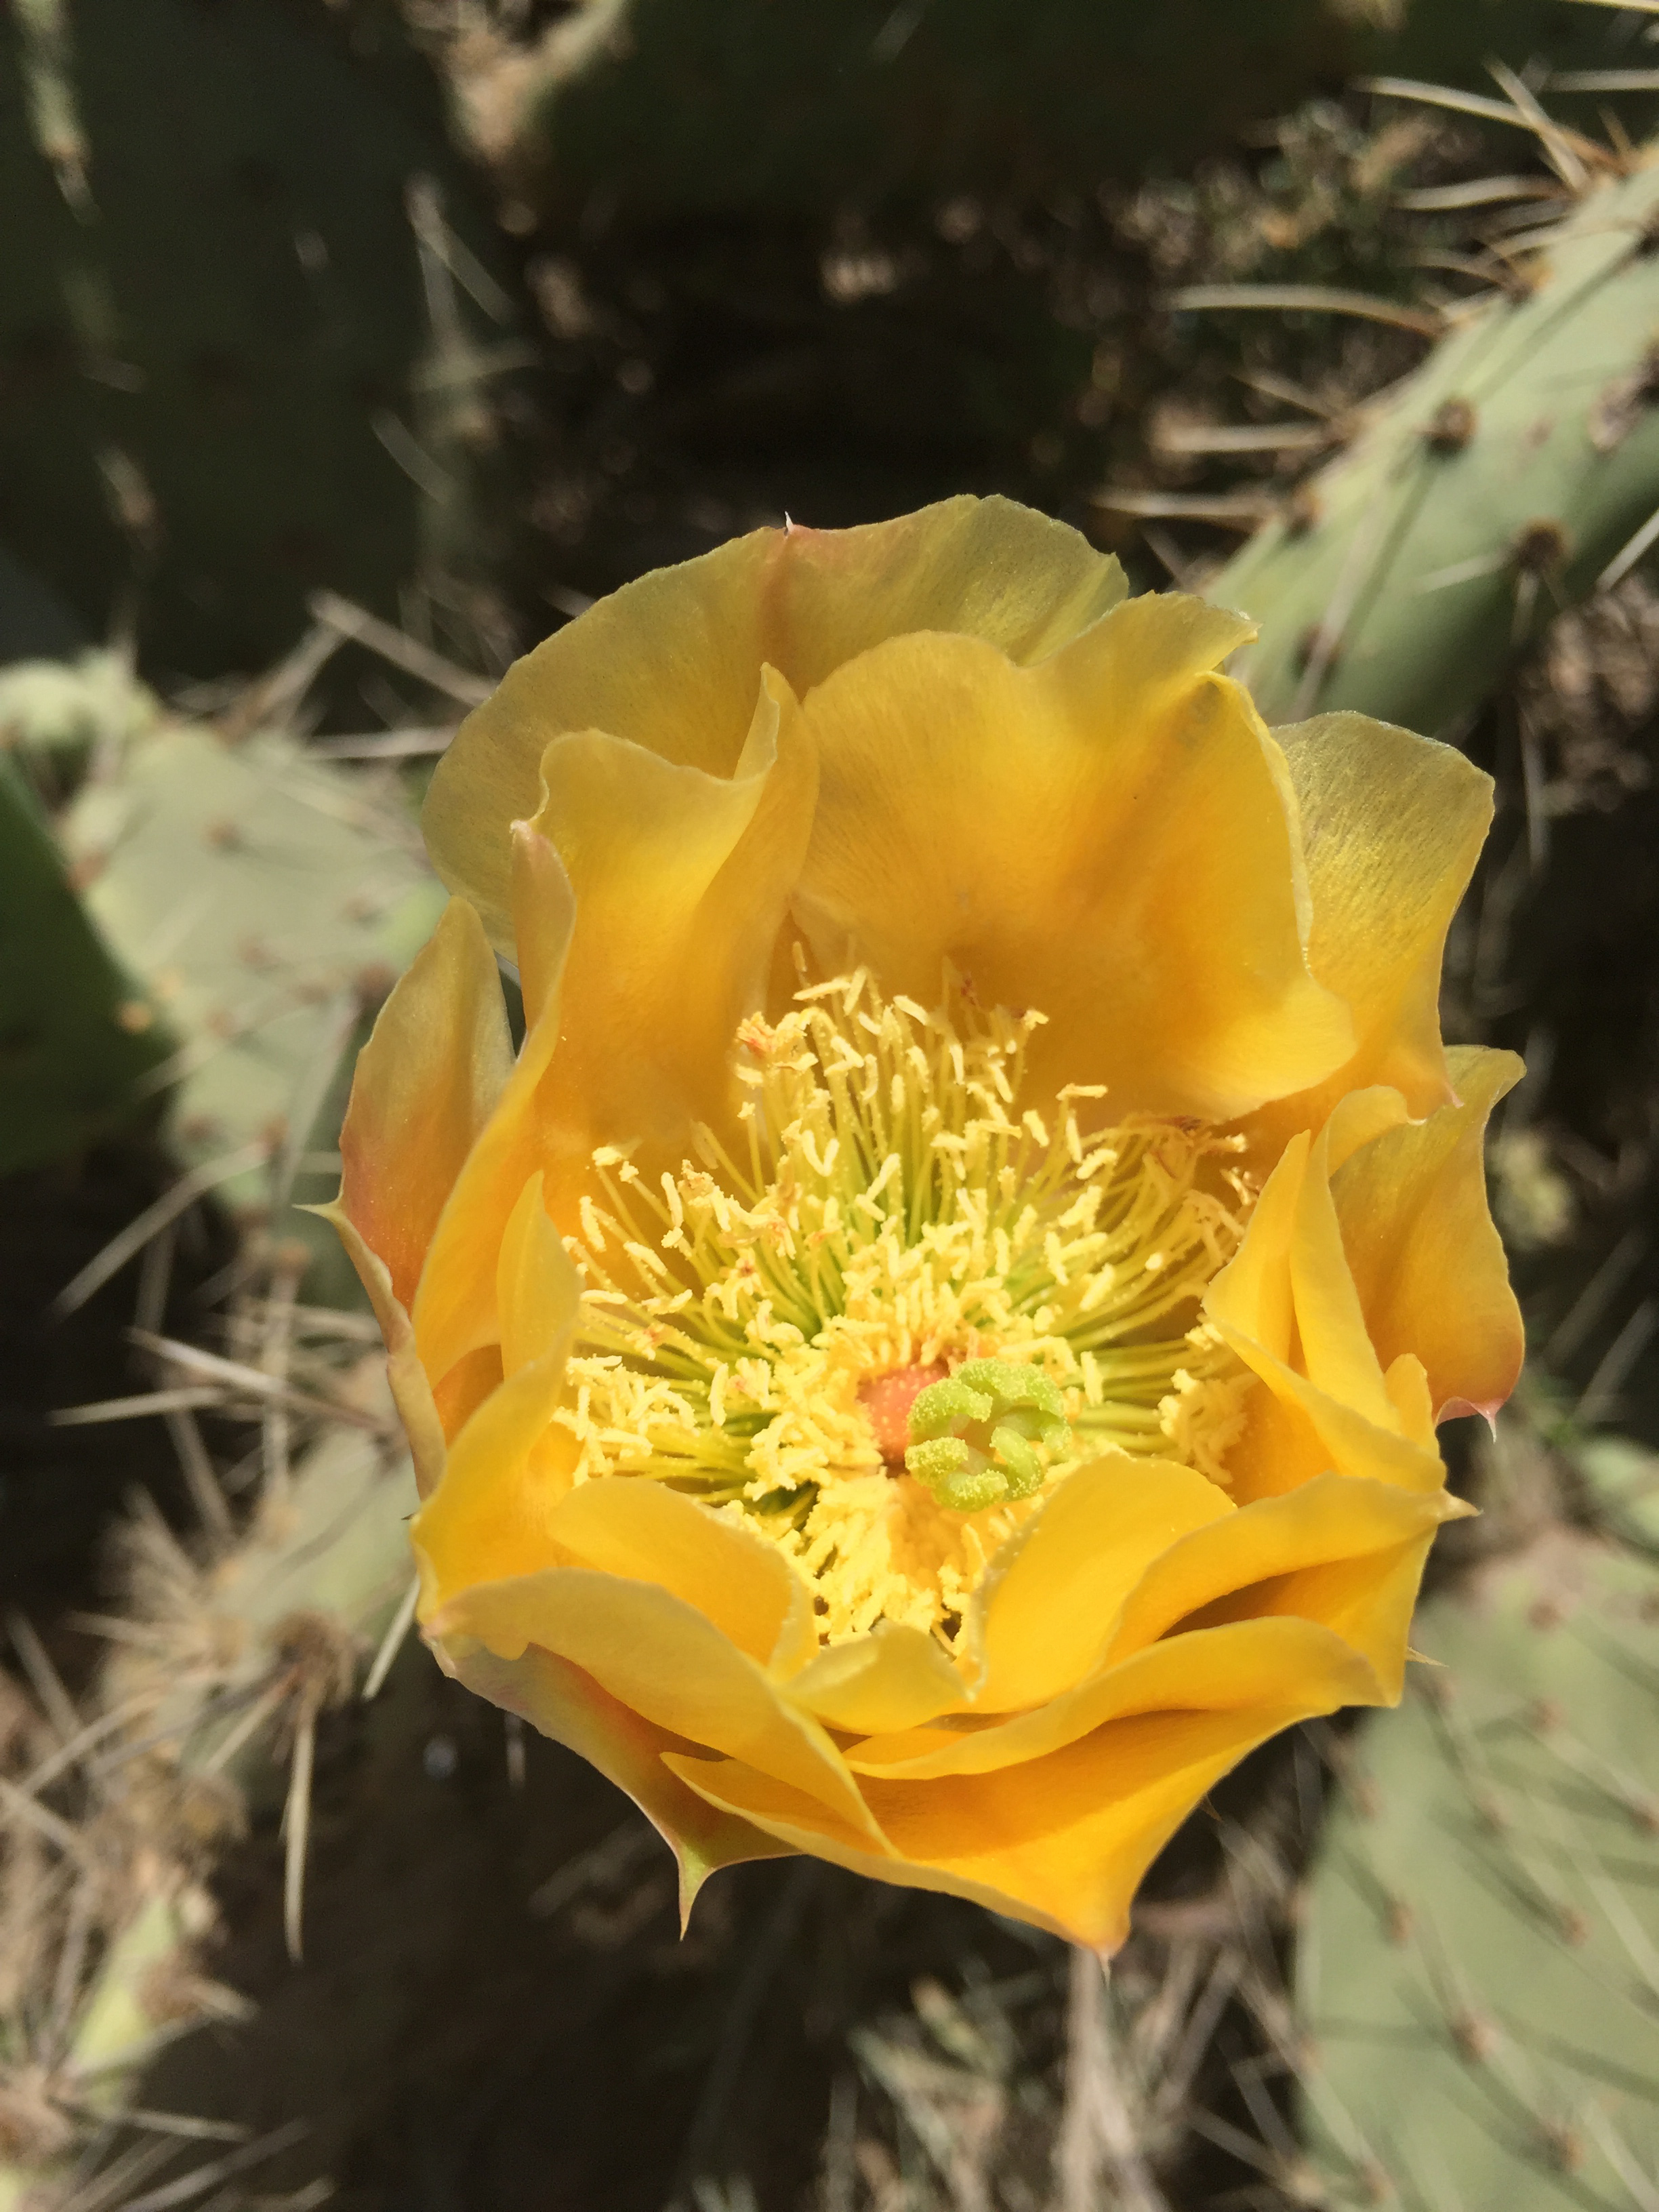 A blooming yellow cactus flower at Torrey Pines.